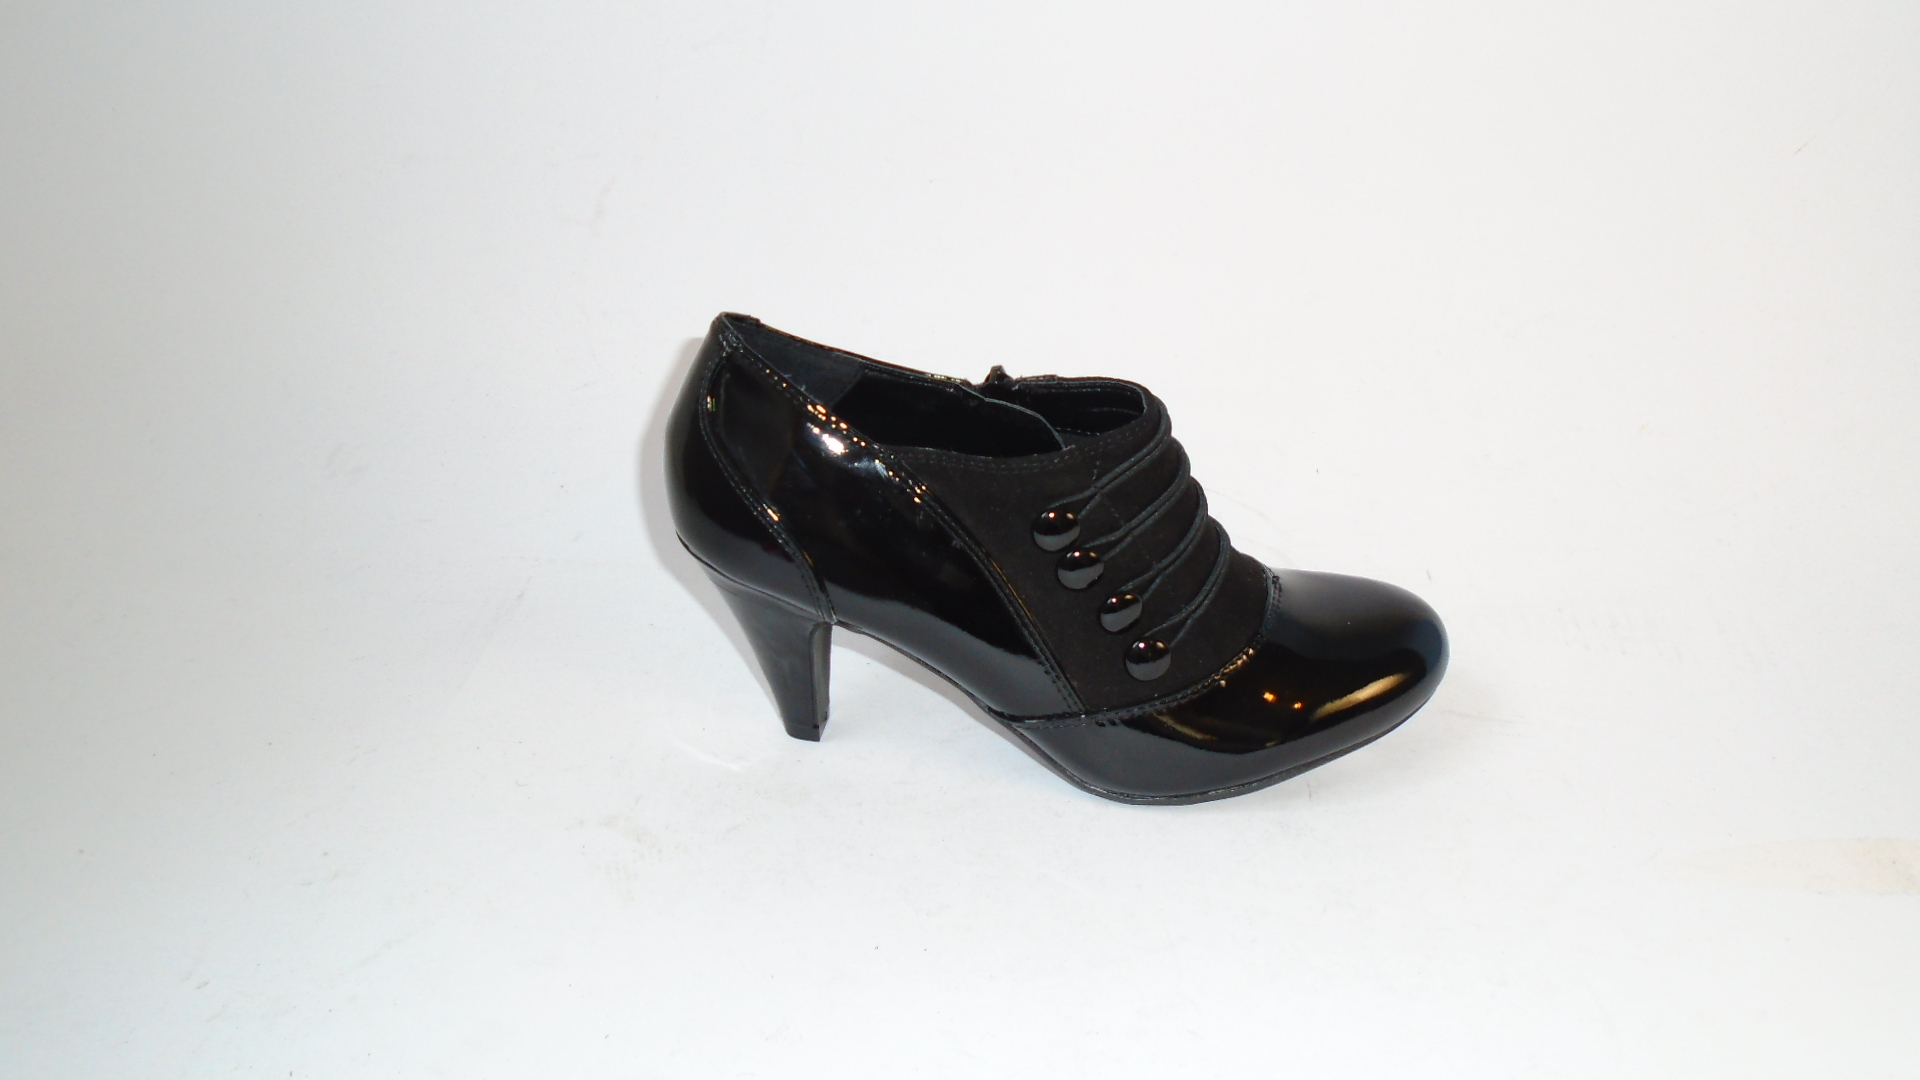 Lotus Black Patent and Check Shoe/Boot